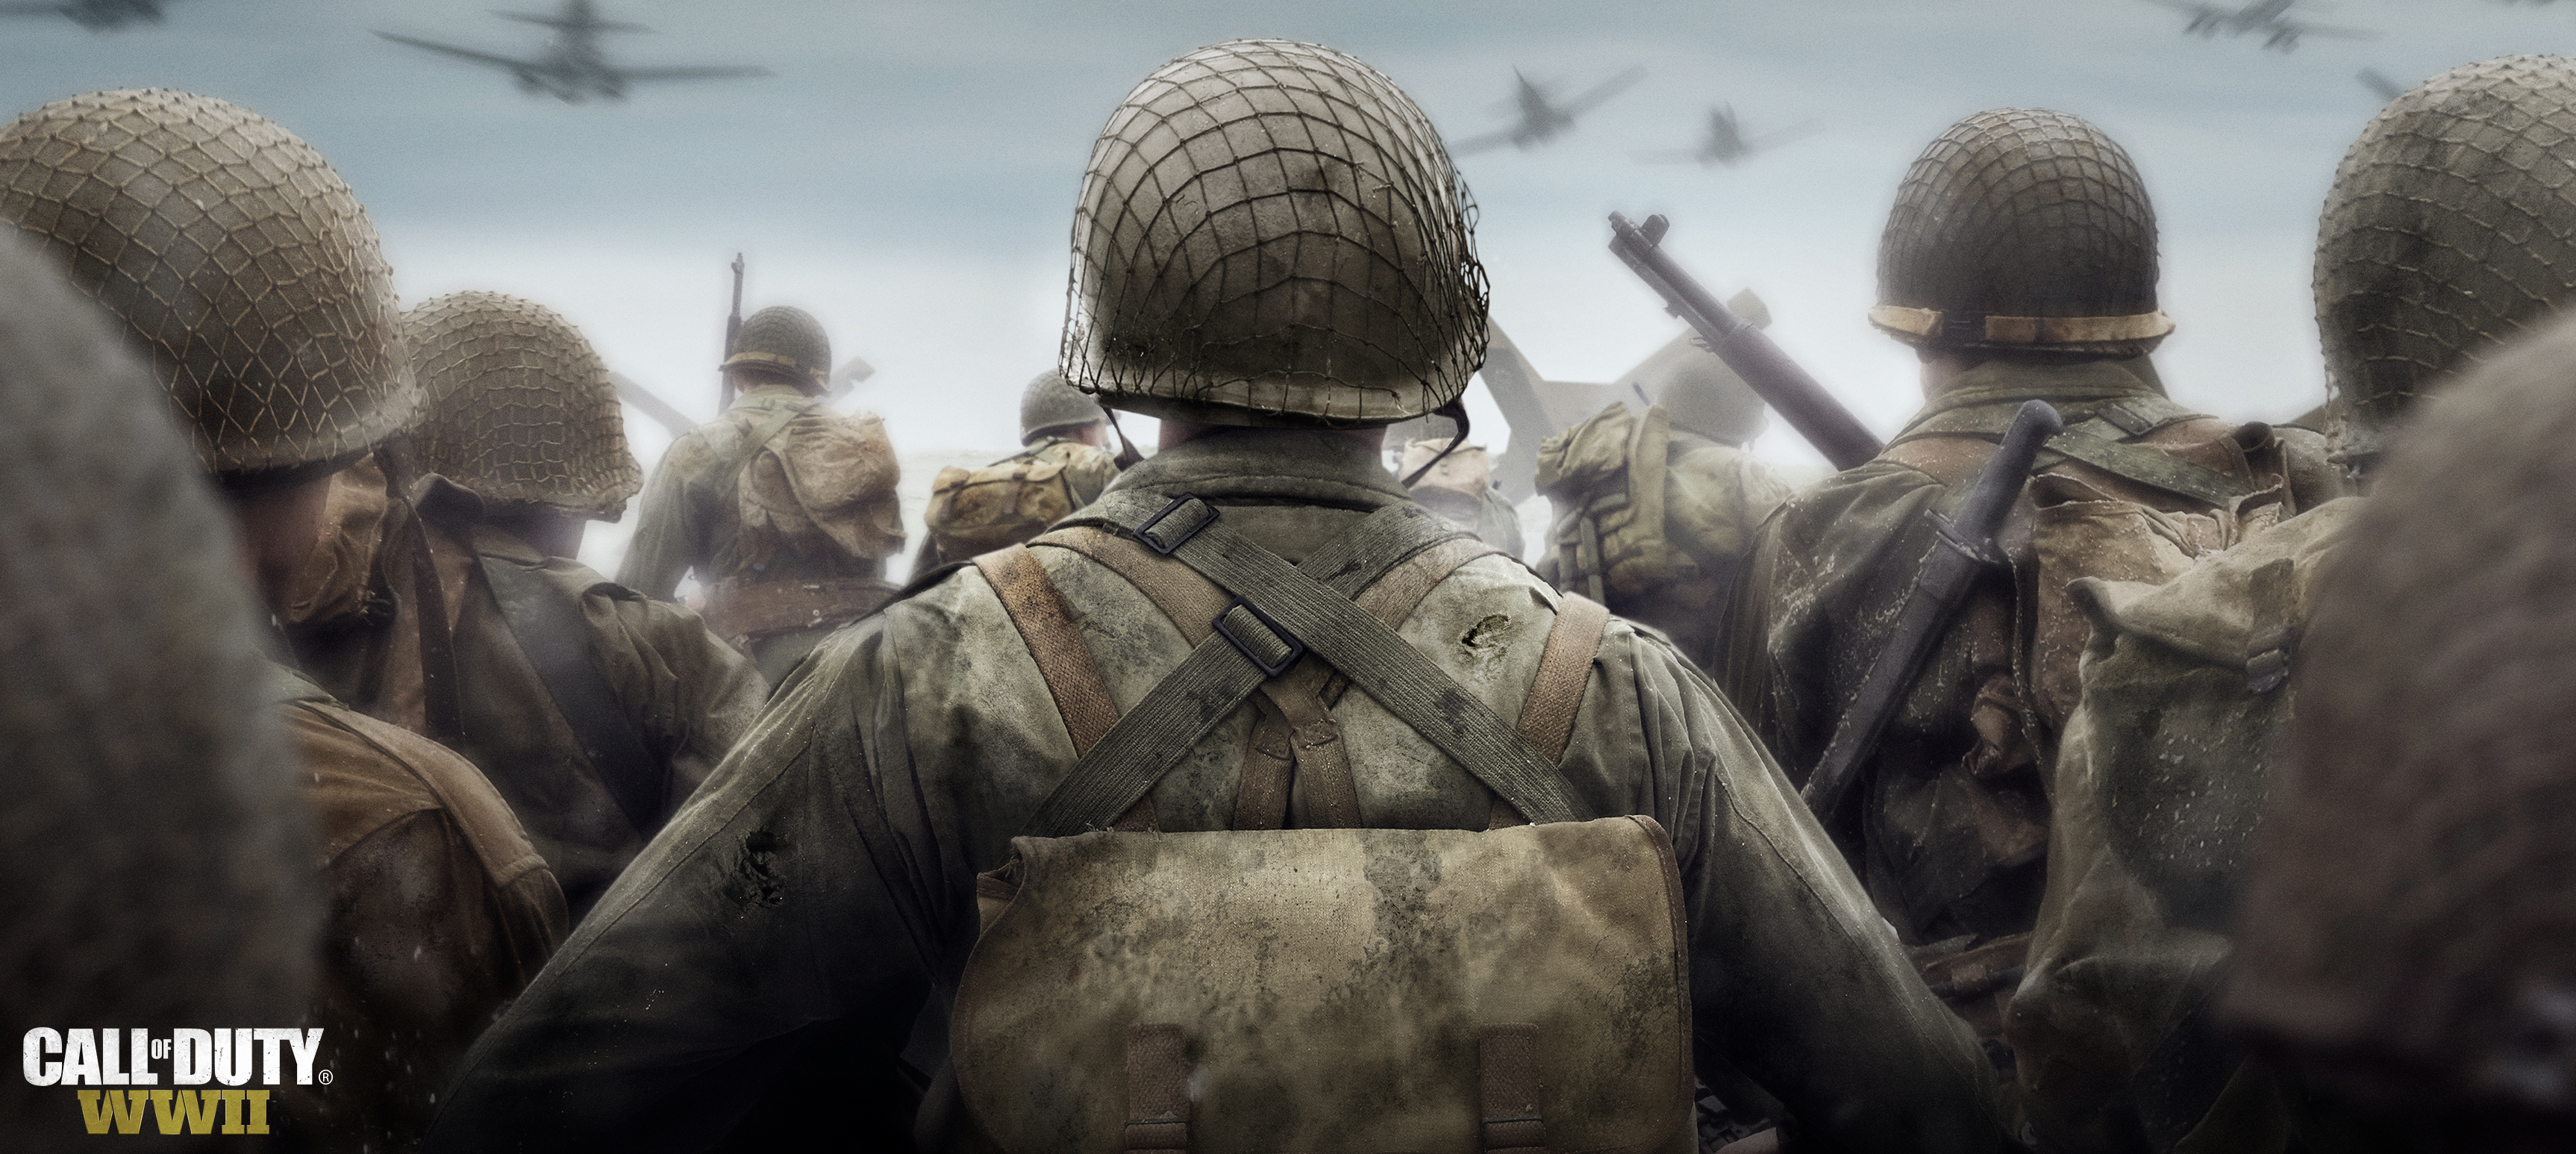 Call of duty wwii hd wallpaper background image - Call of duty world war 2 background ...